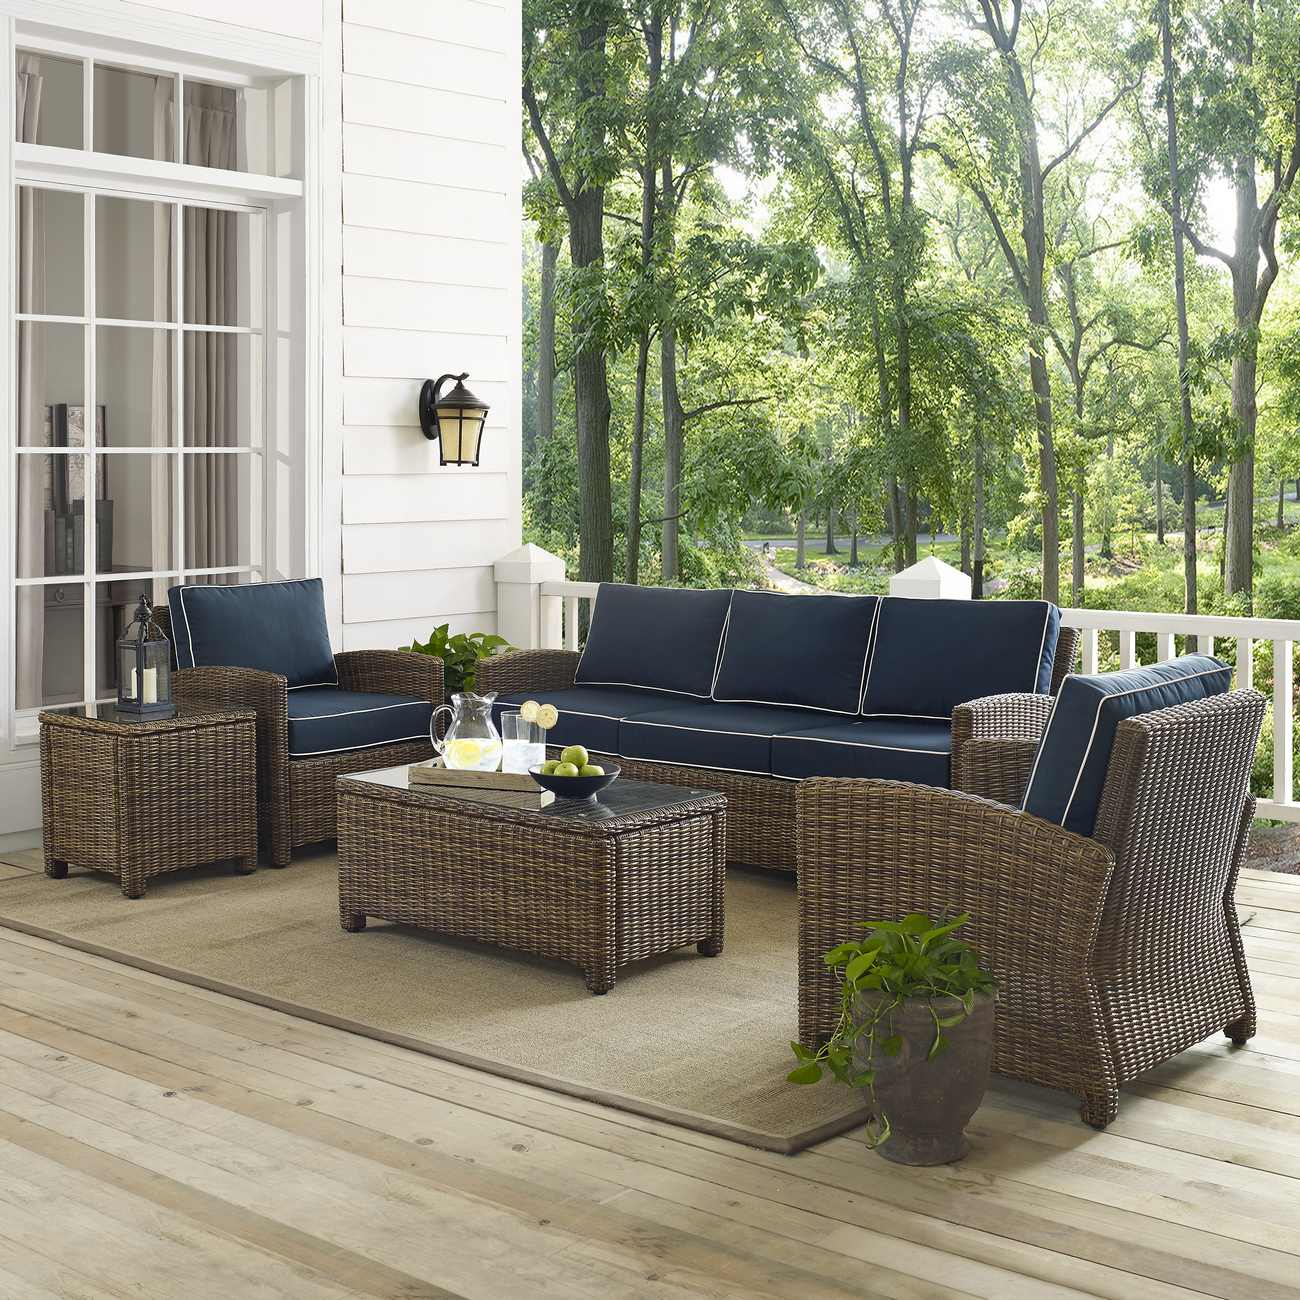 Crosley Brands Outdoor Wicker Sofa Conversation Set Navy Cushions